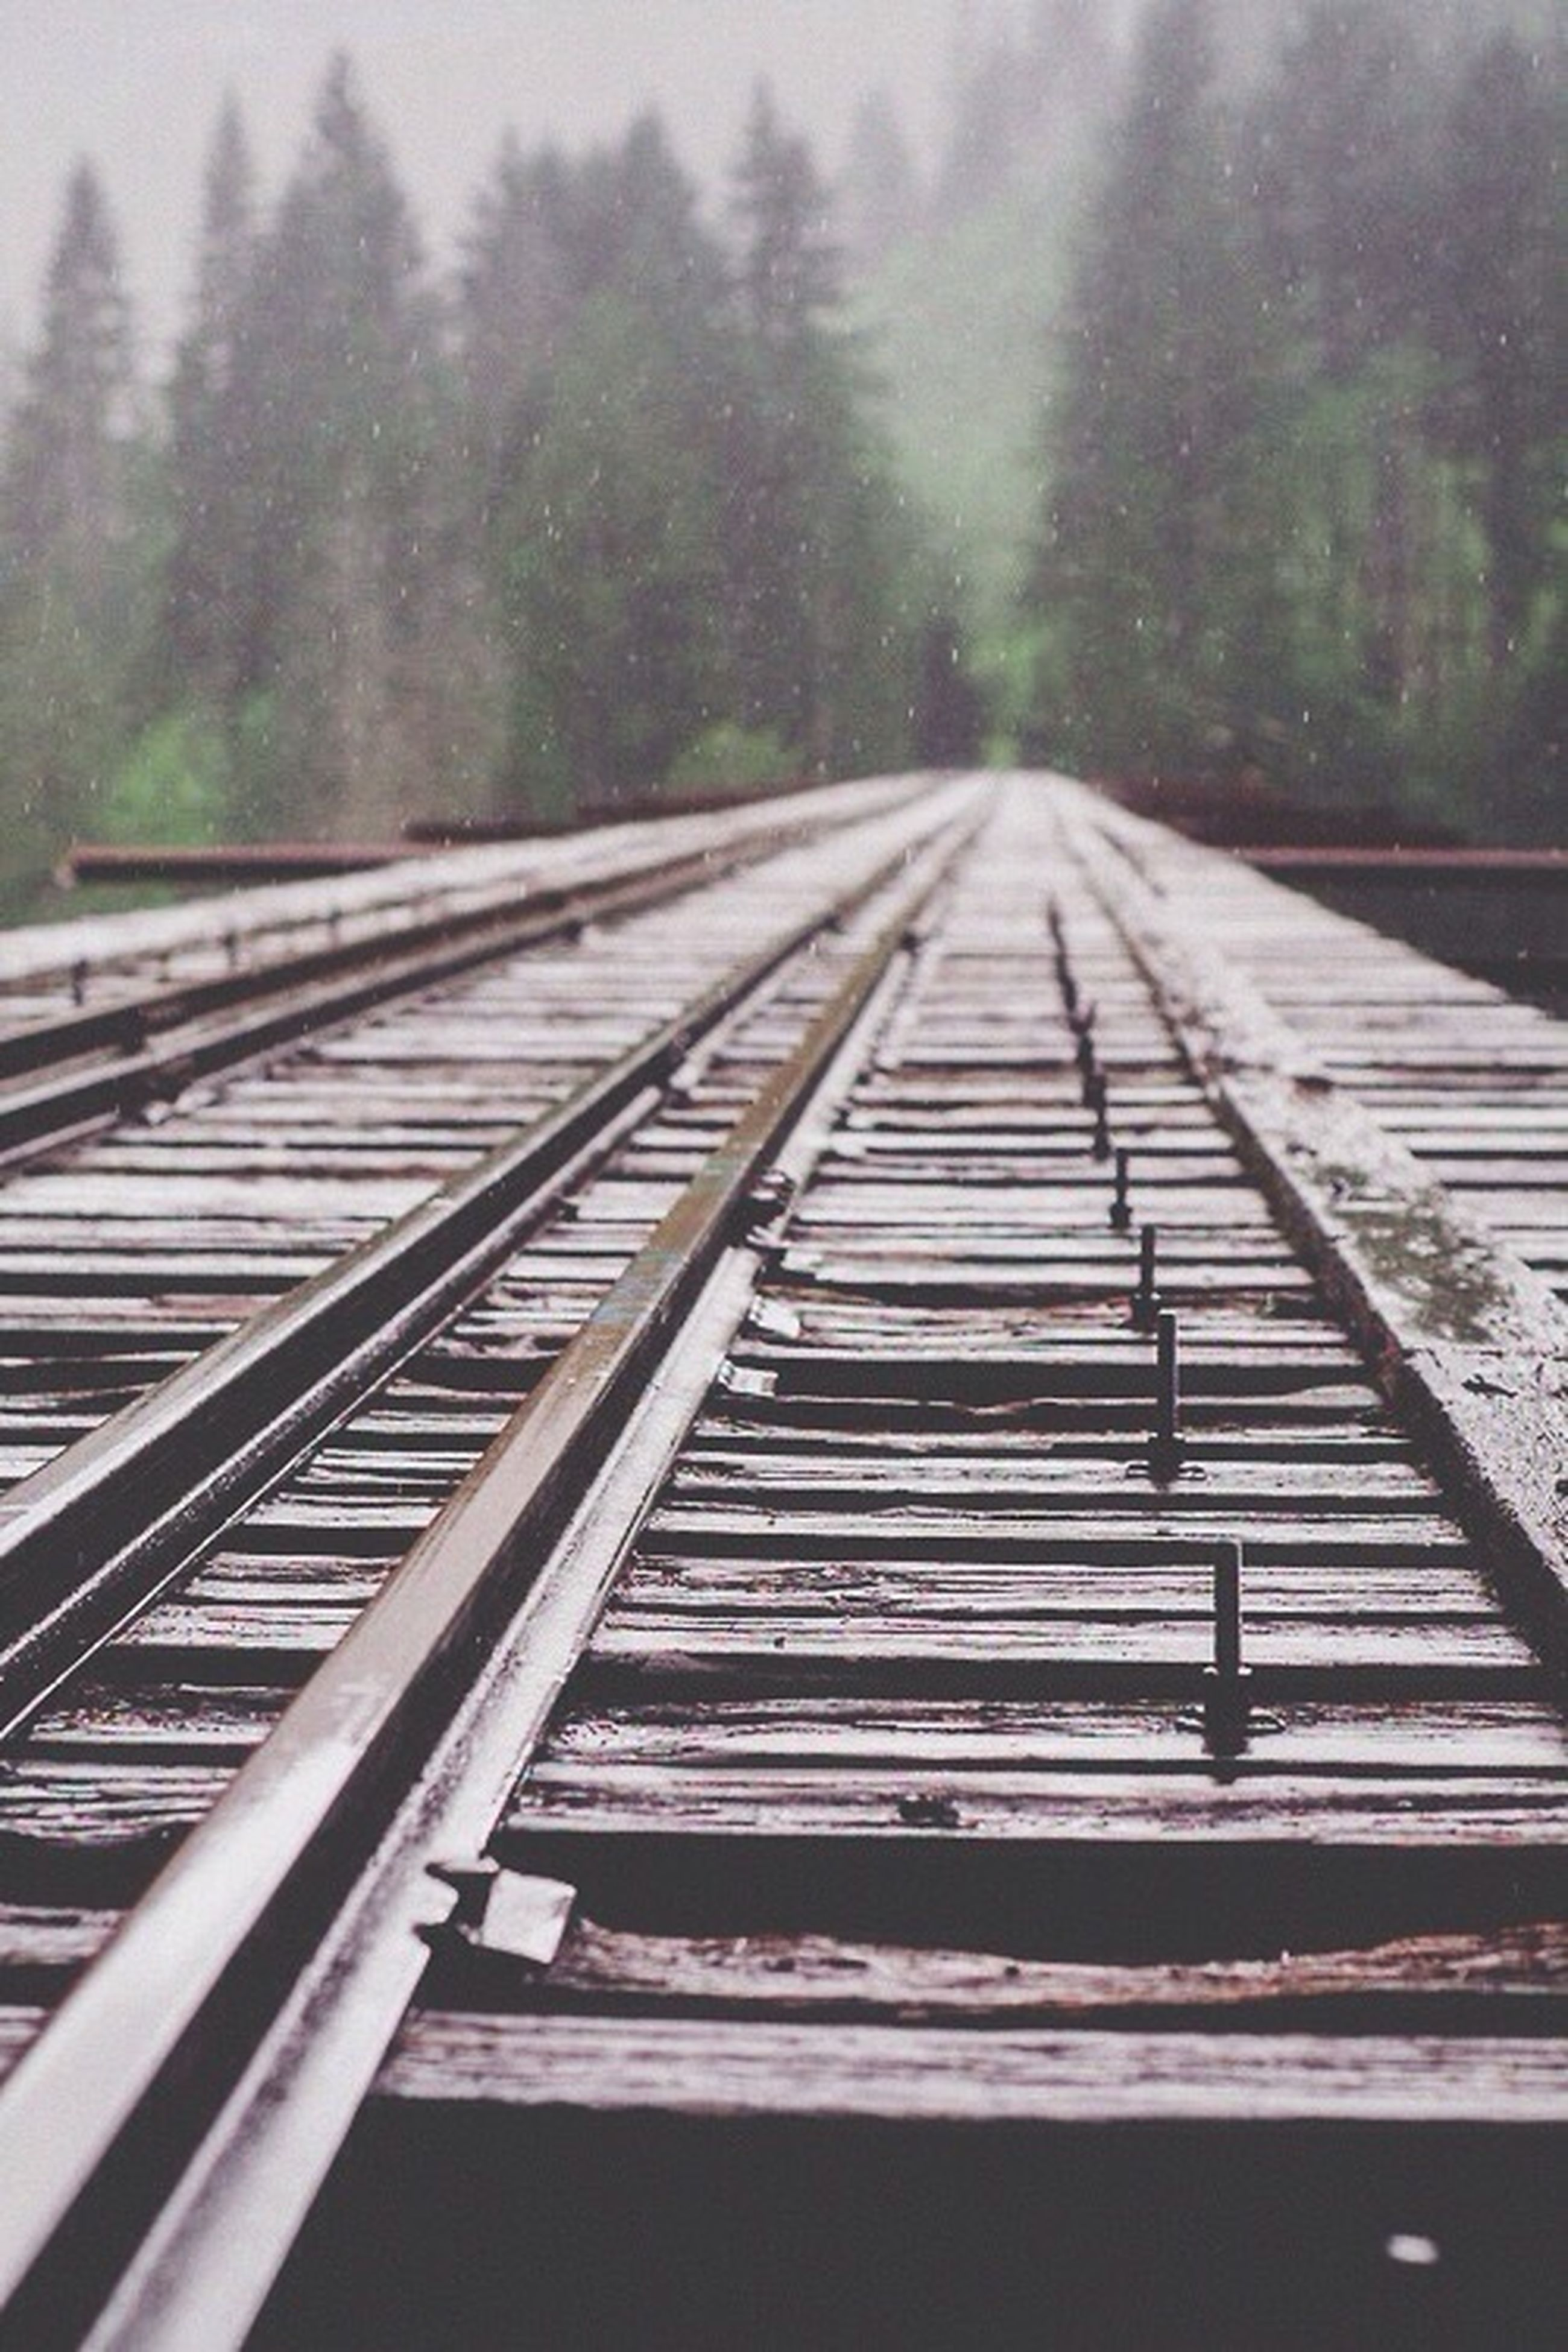 the way forward, diminishing perspective, tree, railroad track, vanishing point, transportation, rail transportation, railing, long, connection, straight, forest, sky, day, no people, surface level, outdoors, tranquility, nature, railway track